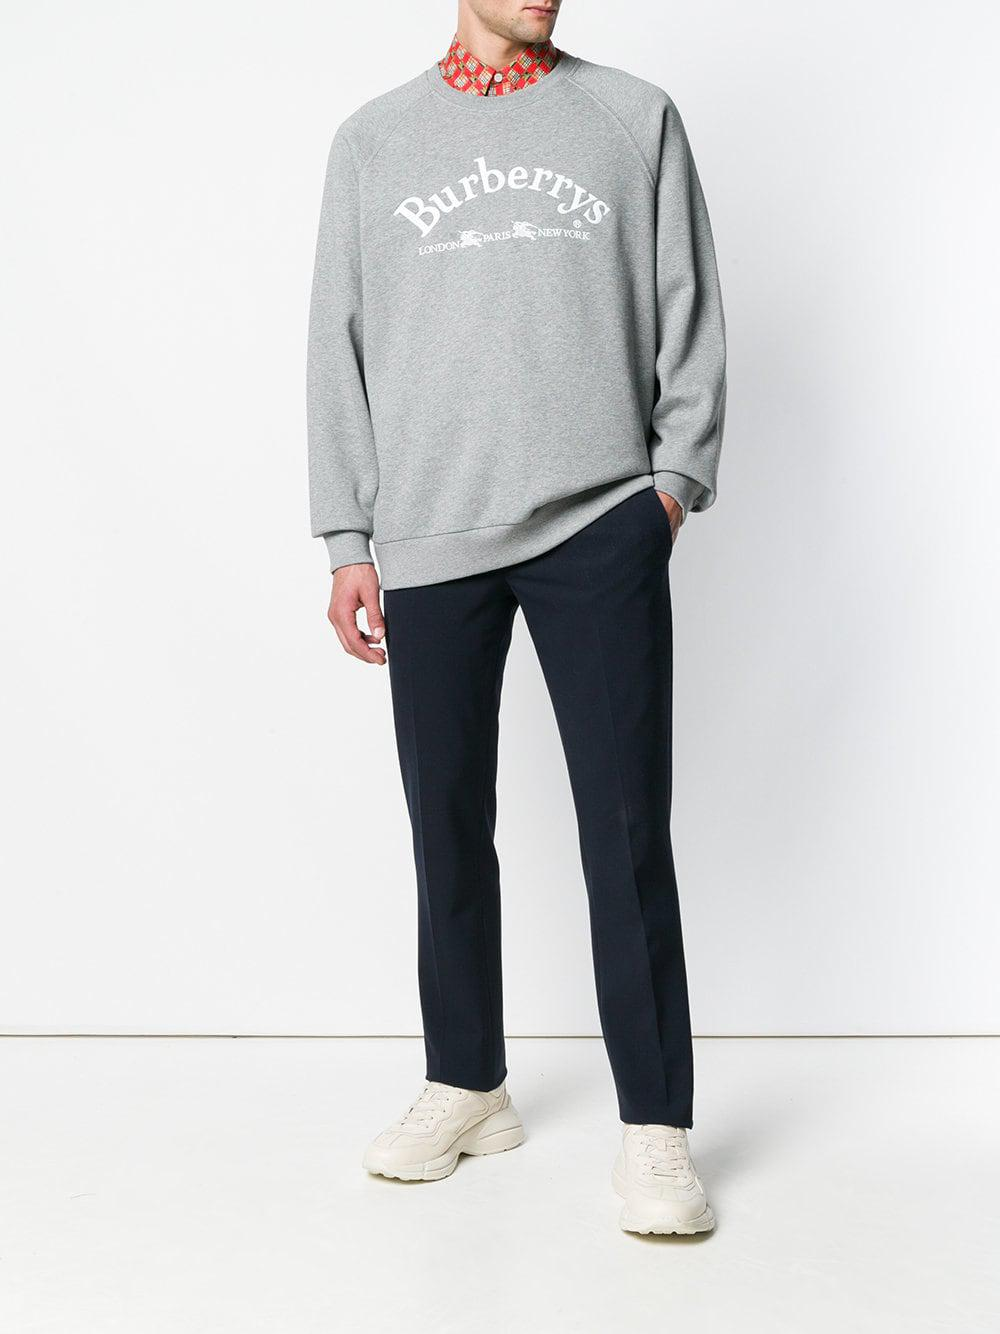 afe4097978e Burberry Embroidered Archive Logo Sweater in Gray for Men - Save 28% - Lyst